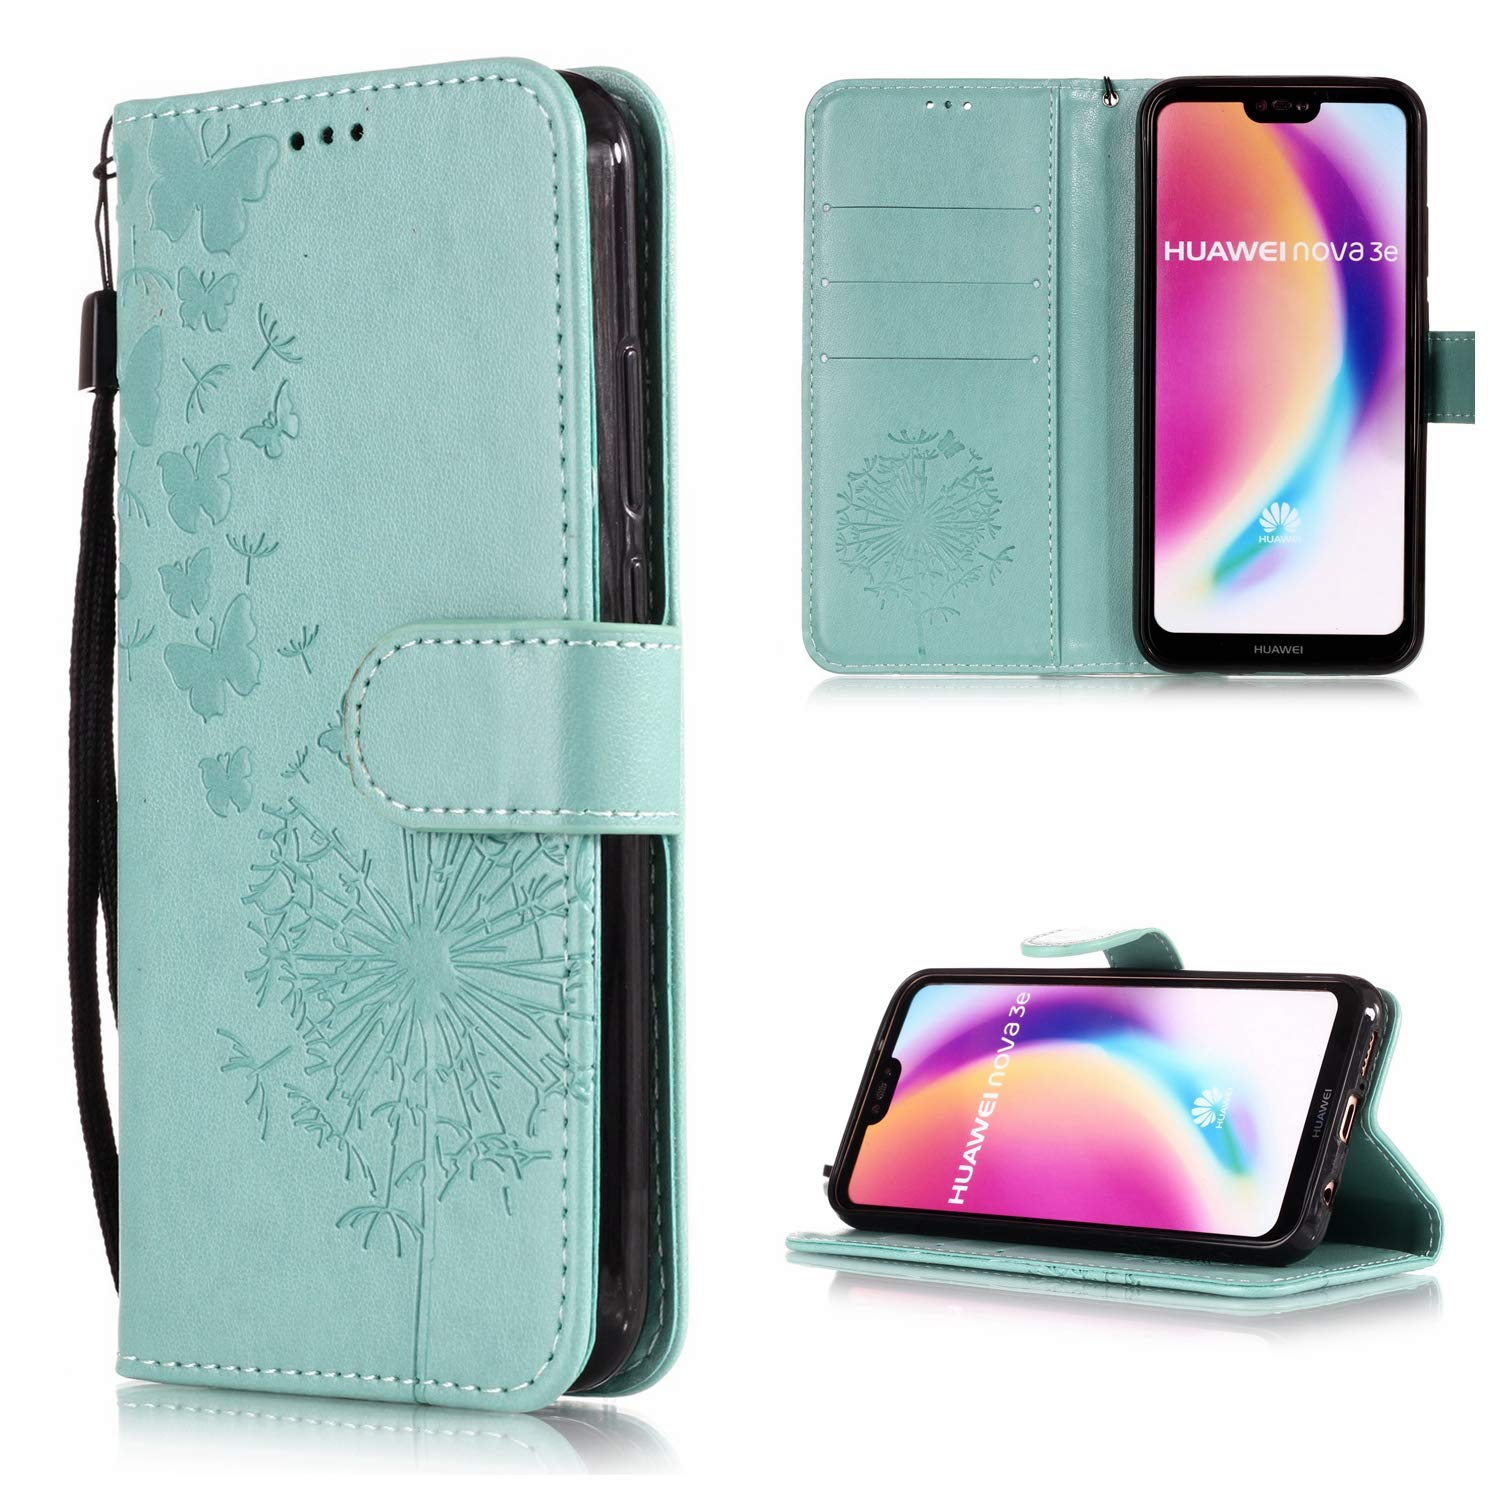 Shinyzone Shockproof Protective Phone Case for Huawei P20 Lite,Embossed Butterfly Dandelion Pattern Series,Functional Magnetic Stand Cover with Card Slots Leather Wallet Flip Case-Rose Gold